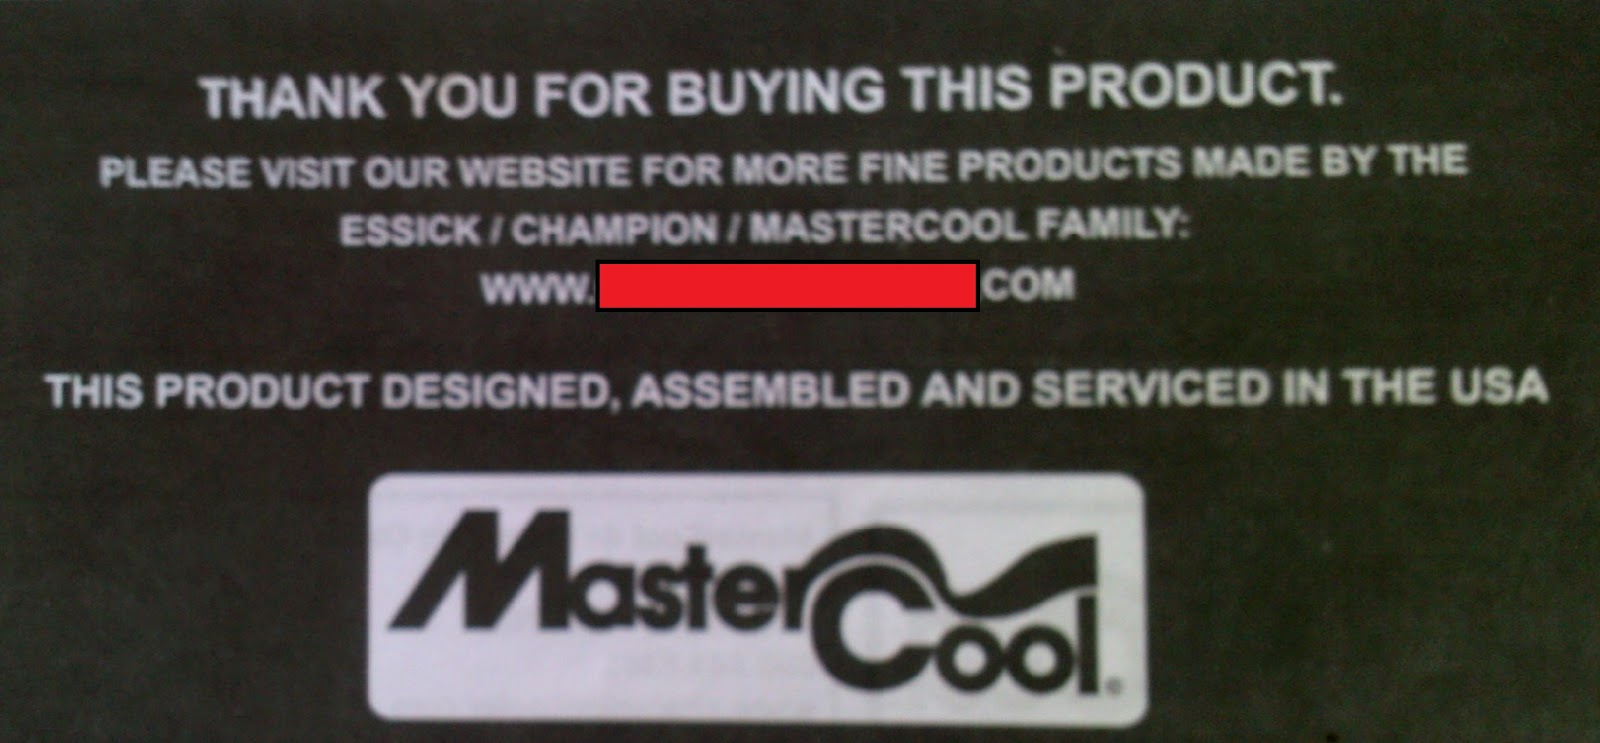 2019: MasterCool Evaporative / Swamp Cooler Customer Review and Problems